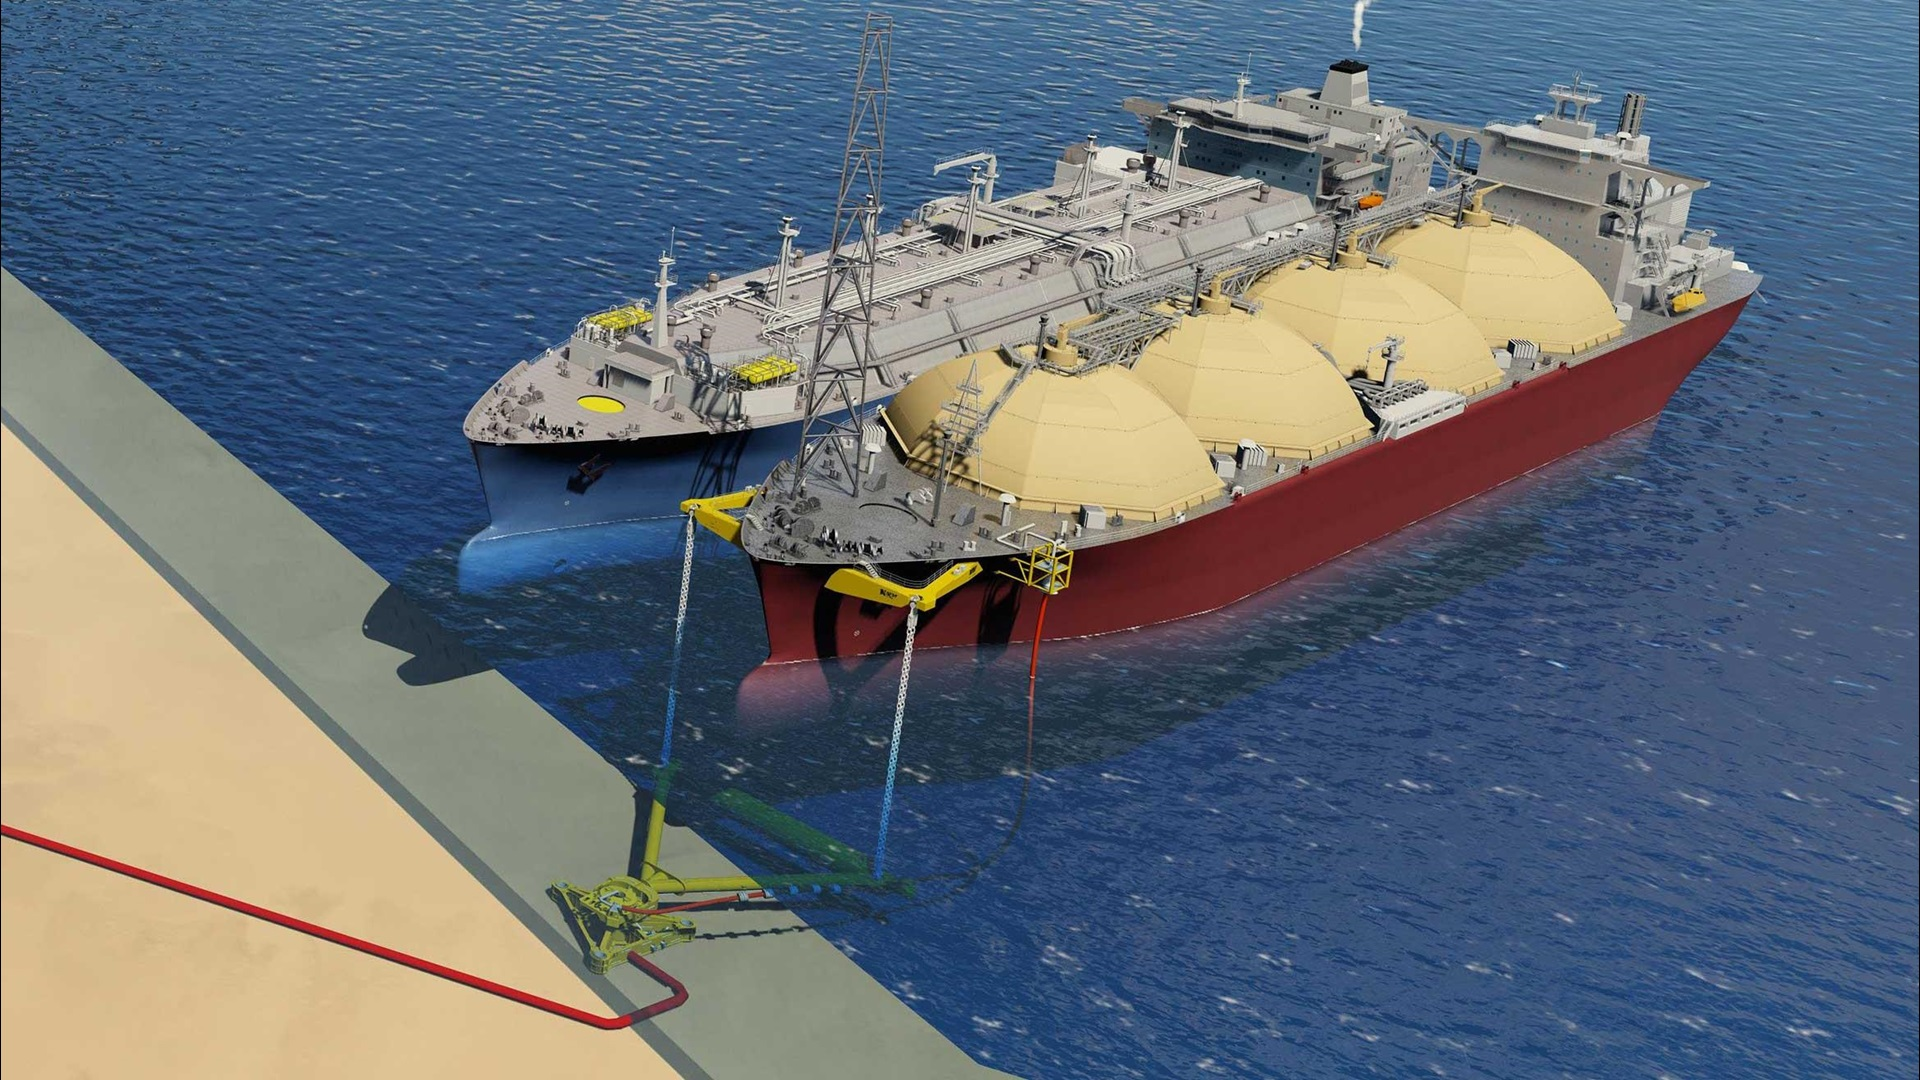 Sky view render of two tankers side-by-side in the water, showing the Submerged Swivel and Yoke